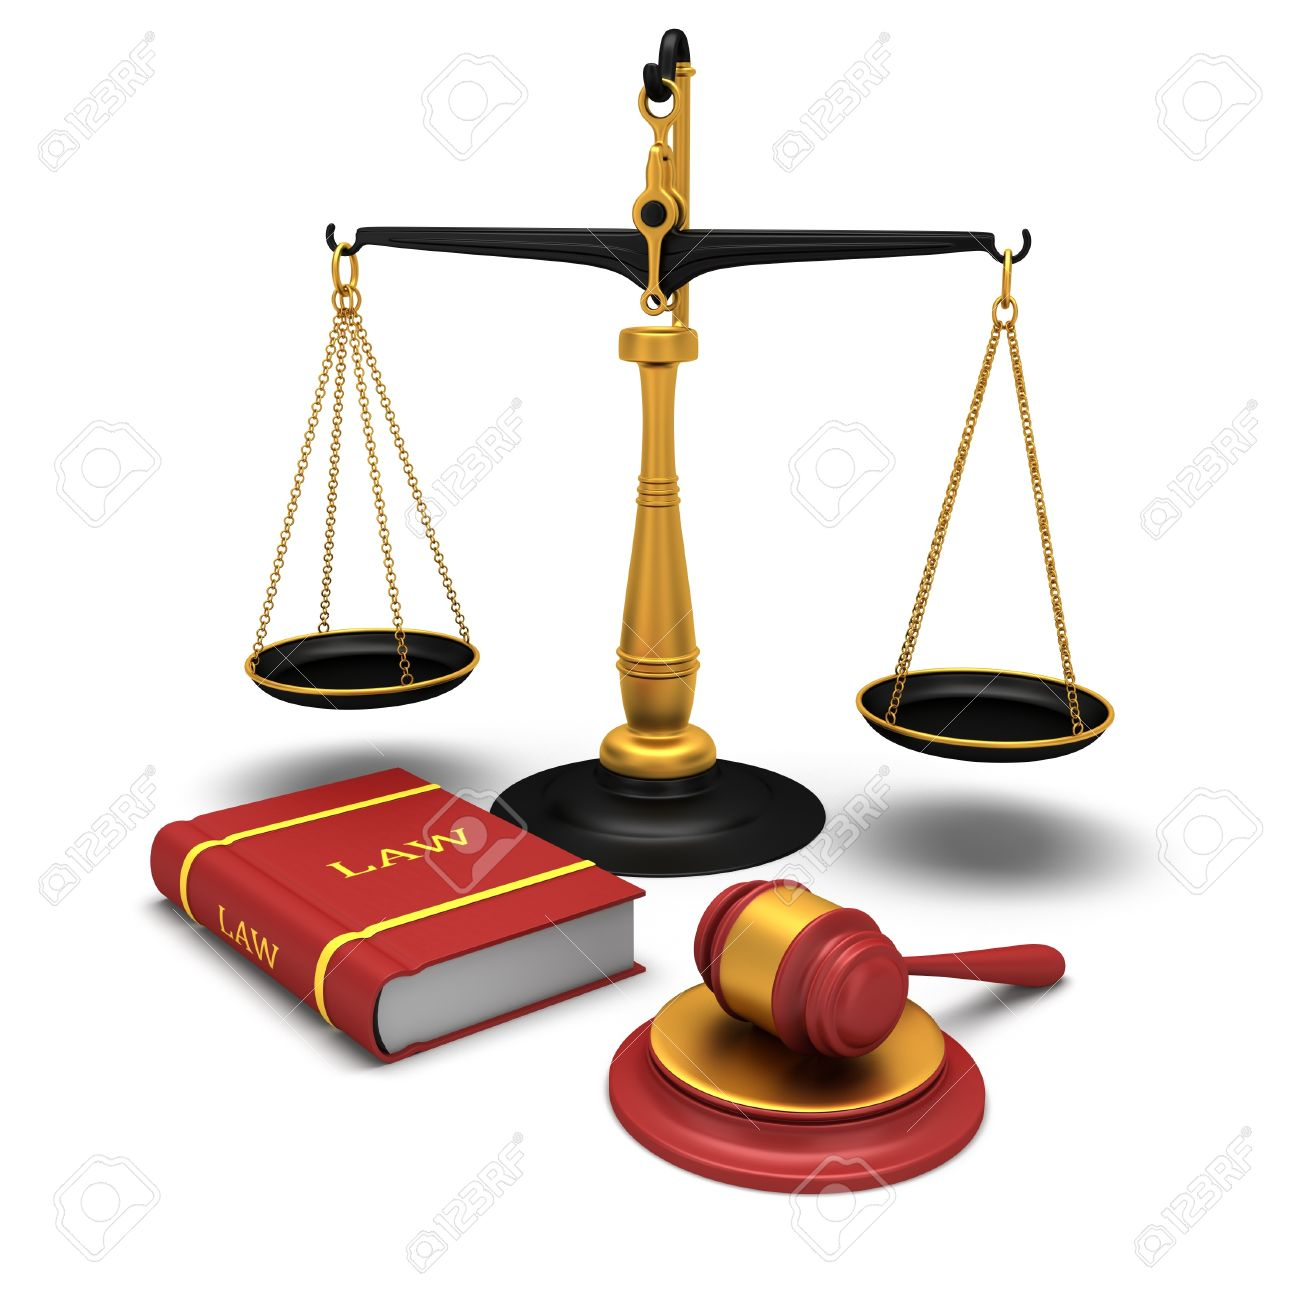 Justice scale and gavel and a book of laws Stock Photo - 18824281